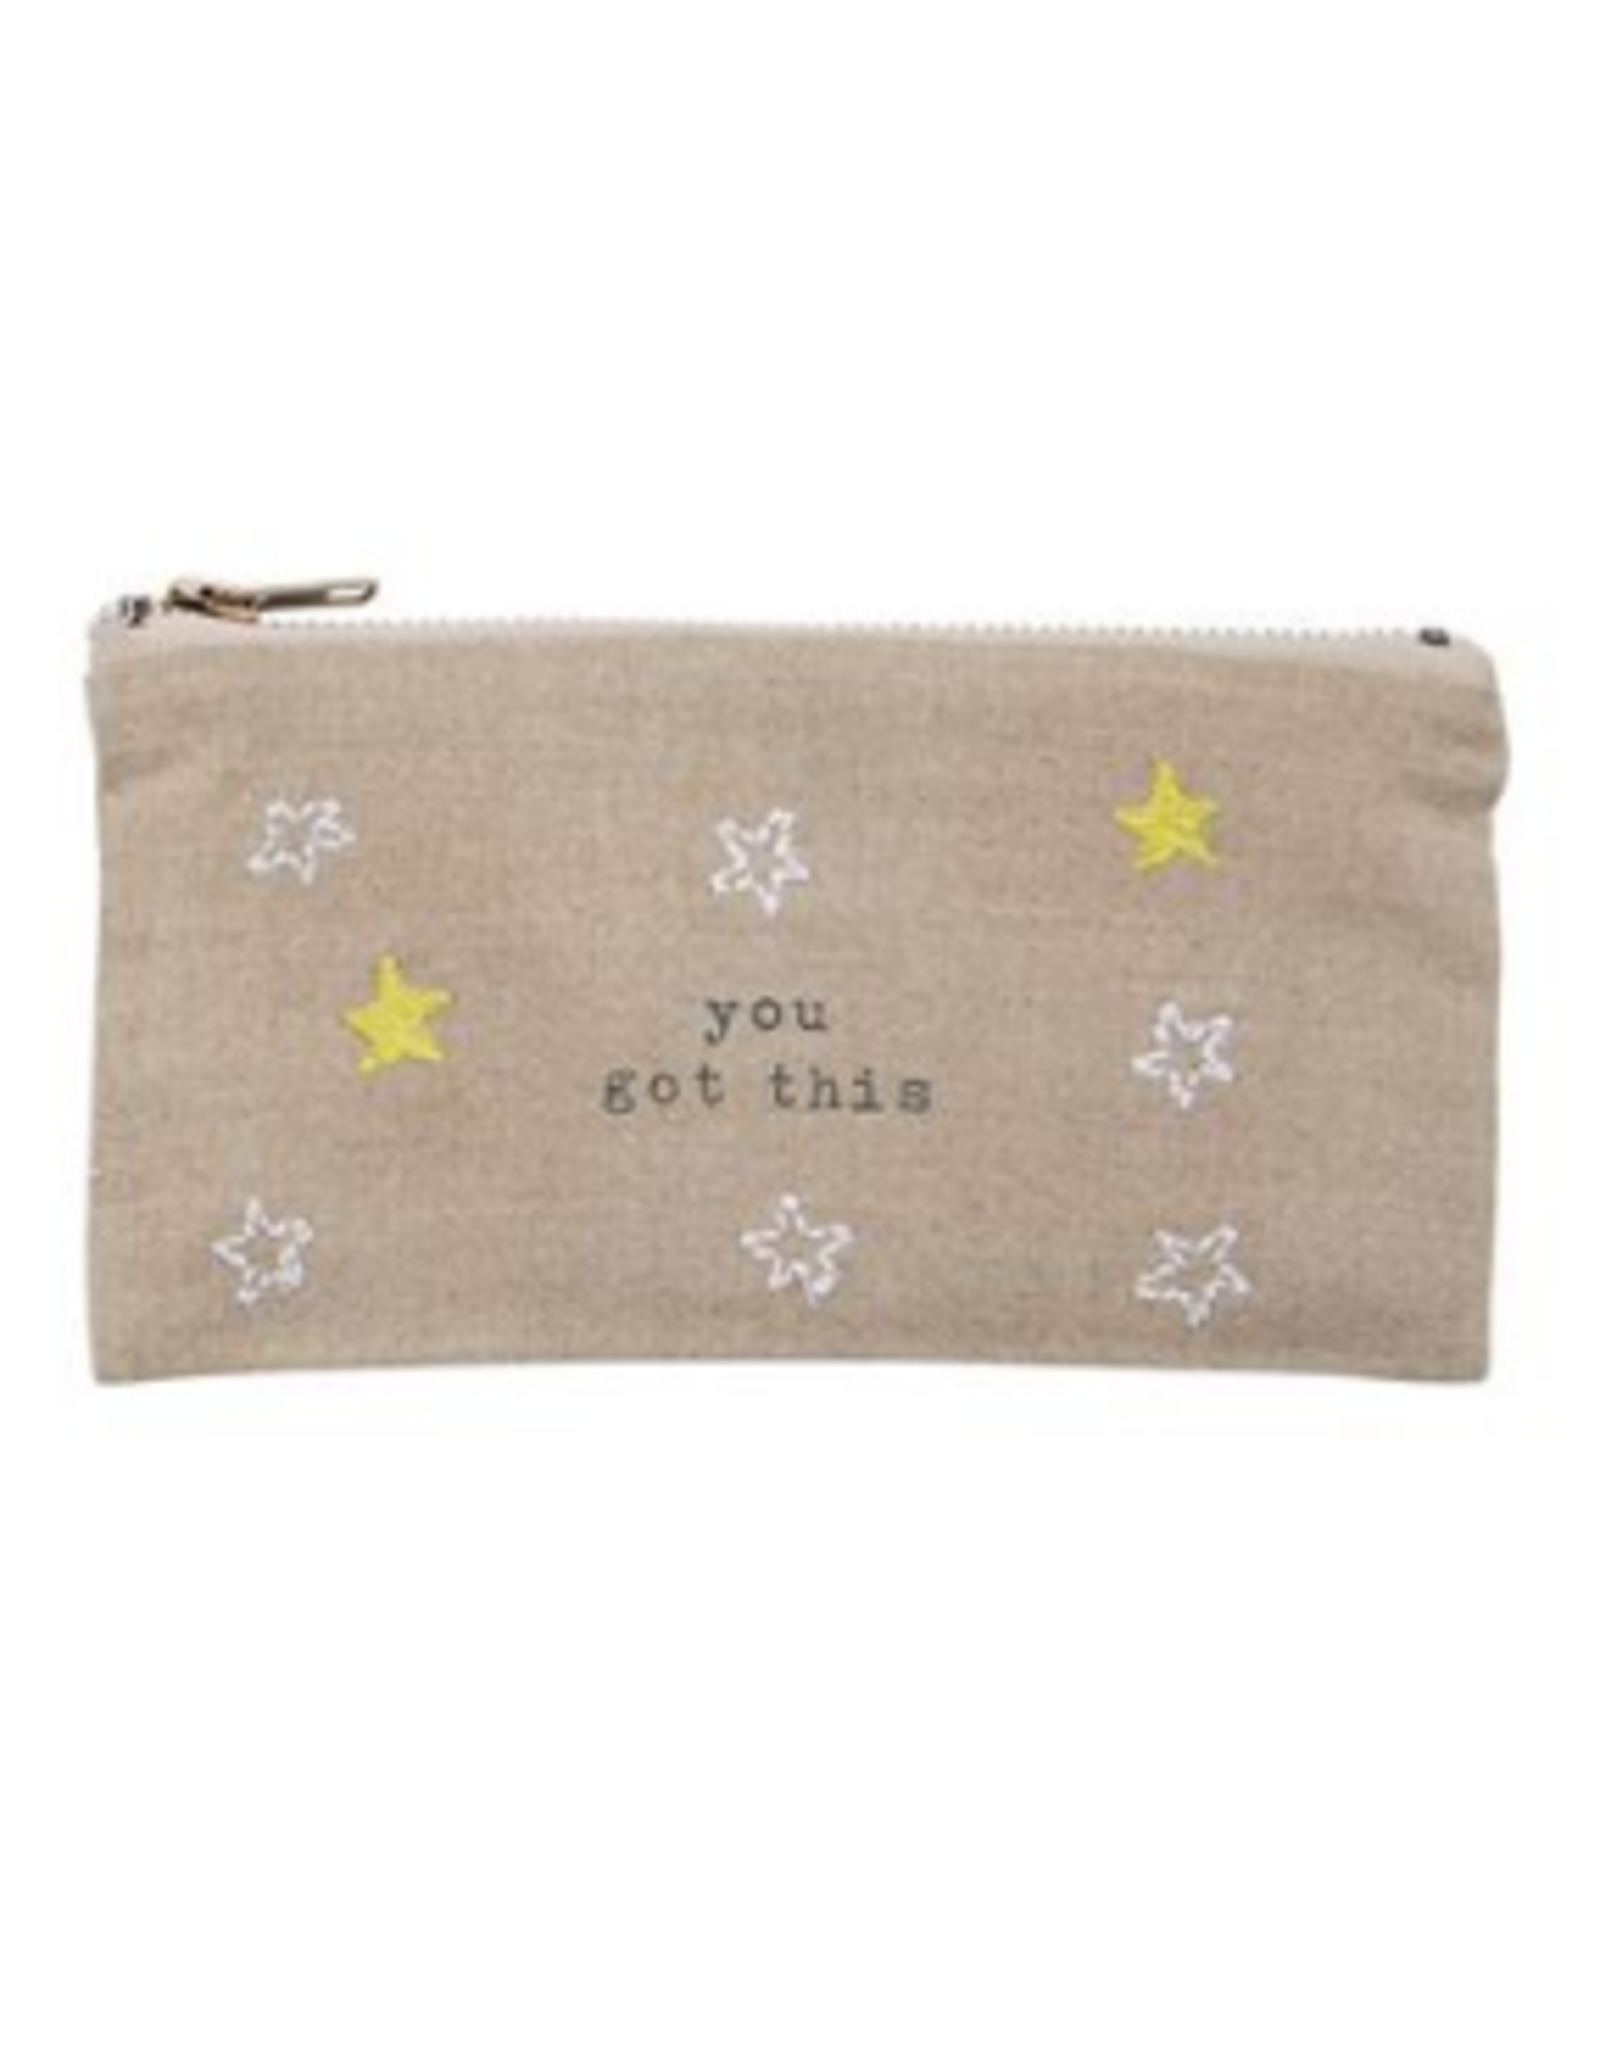 Mud Pie Got This Pazitive Pouch